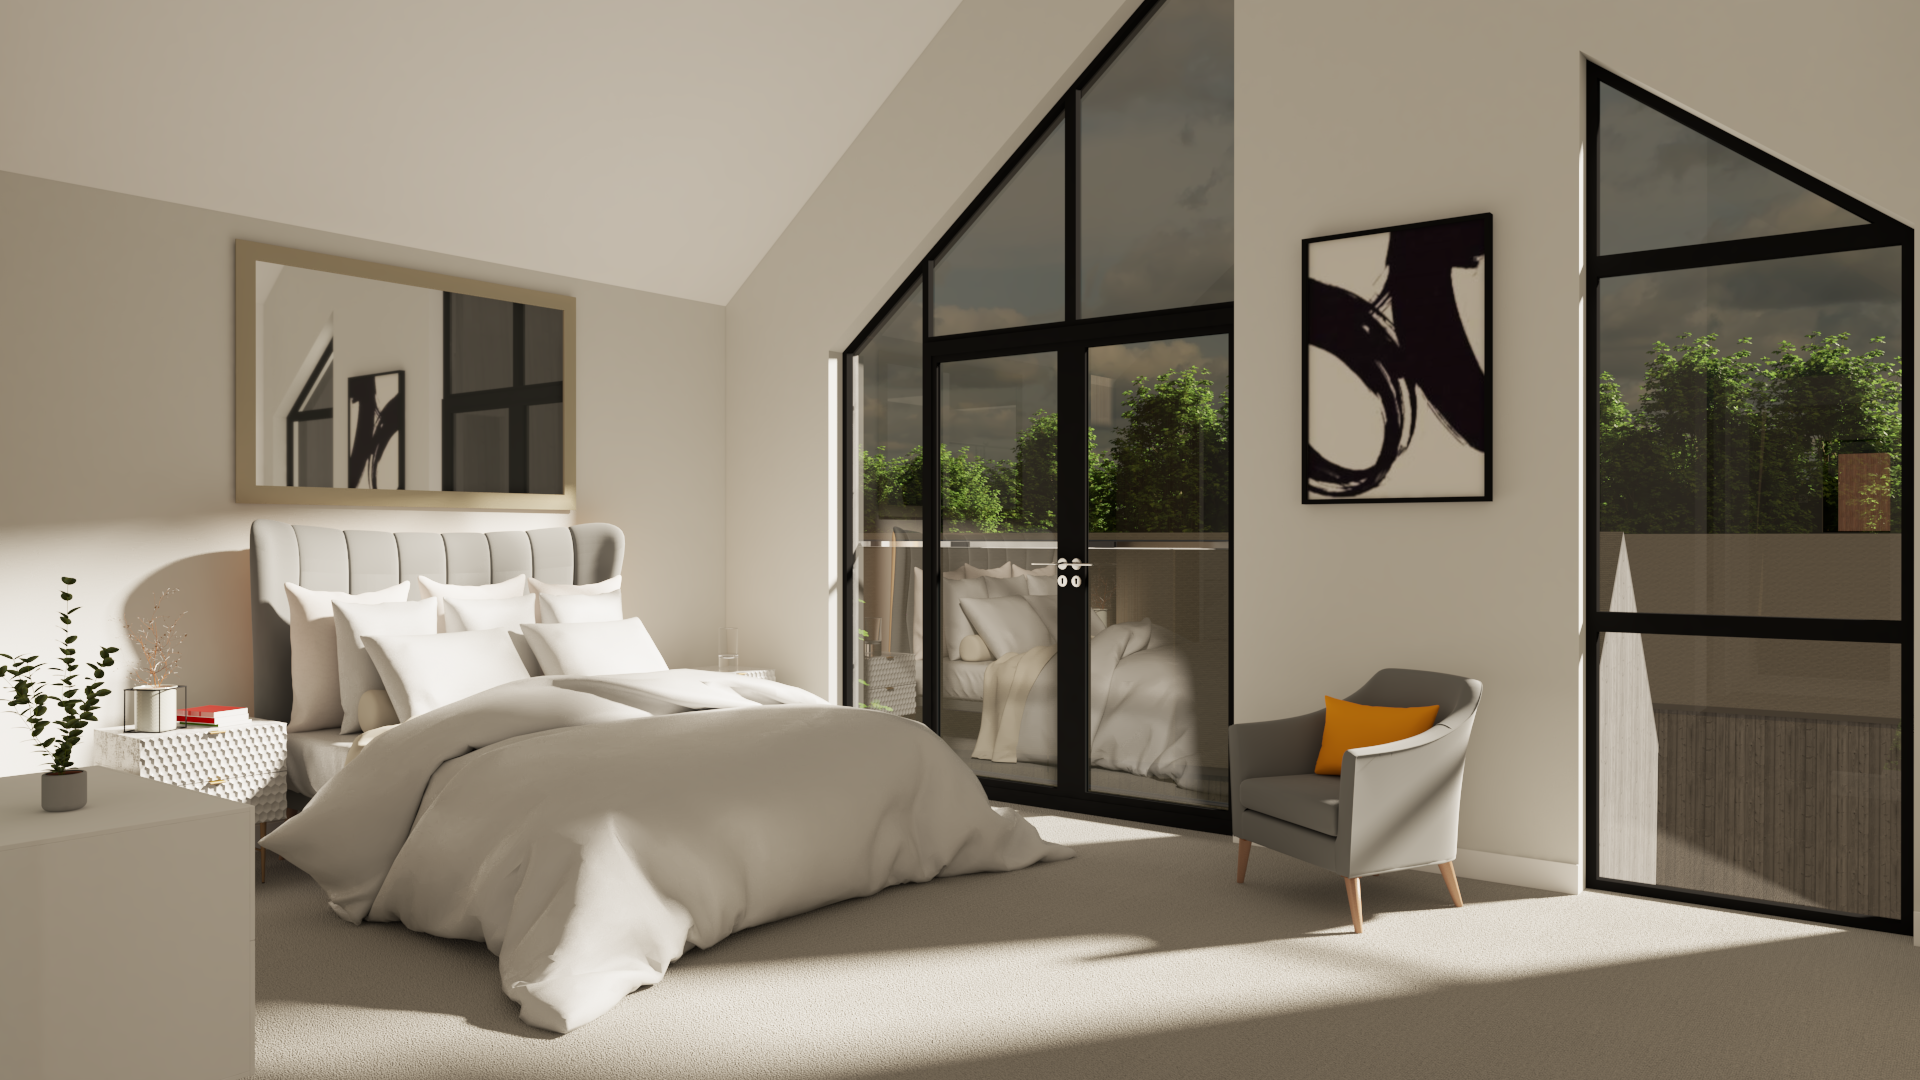 Bedroom CGI V6 – Selected